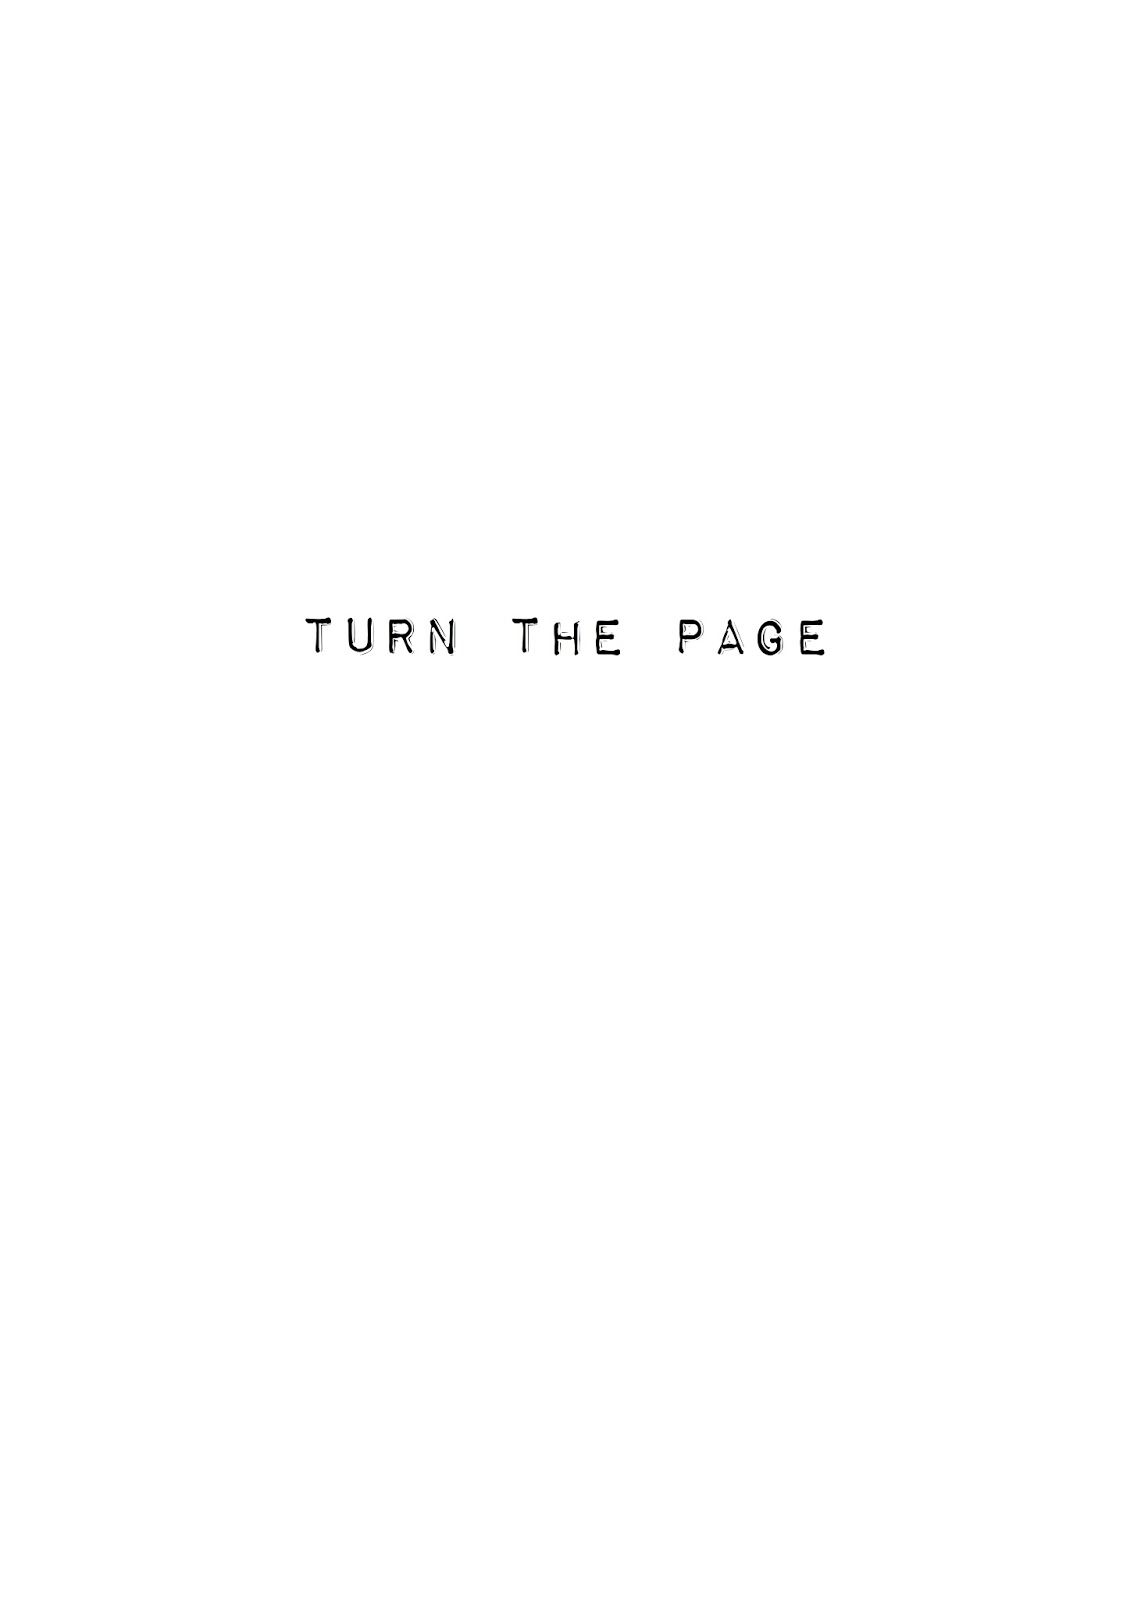 Turn The Page Quotes 1.bp.blogspot Azdngpudbuq Vp87Pwjk3Wi Aaaaaaaacaa Ic25Muwvpg